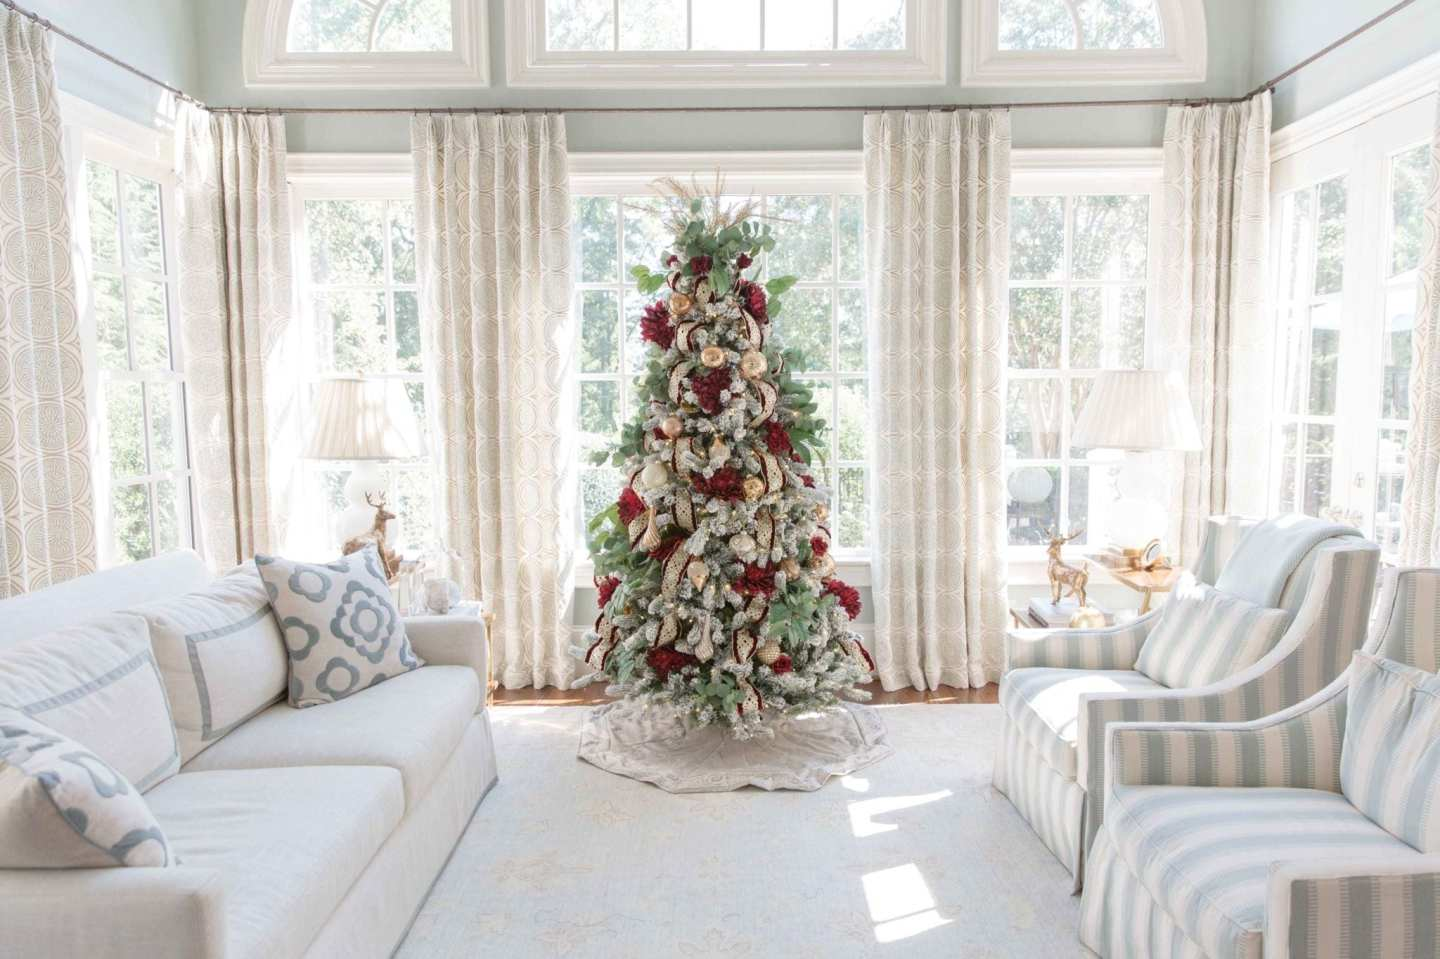 Red and Gold Christmas Tree Decorations. Decorate your Christmas tree in red and green. Artificial flowers bring this flocked tree to life with Christmas spirit in all things red and green and snowy white! Inspiration for how to decorate one tree in two very different styles!